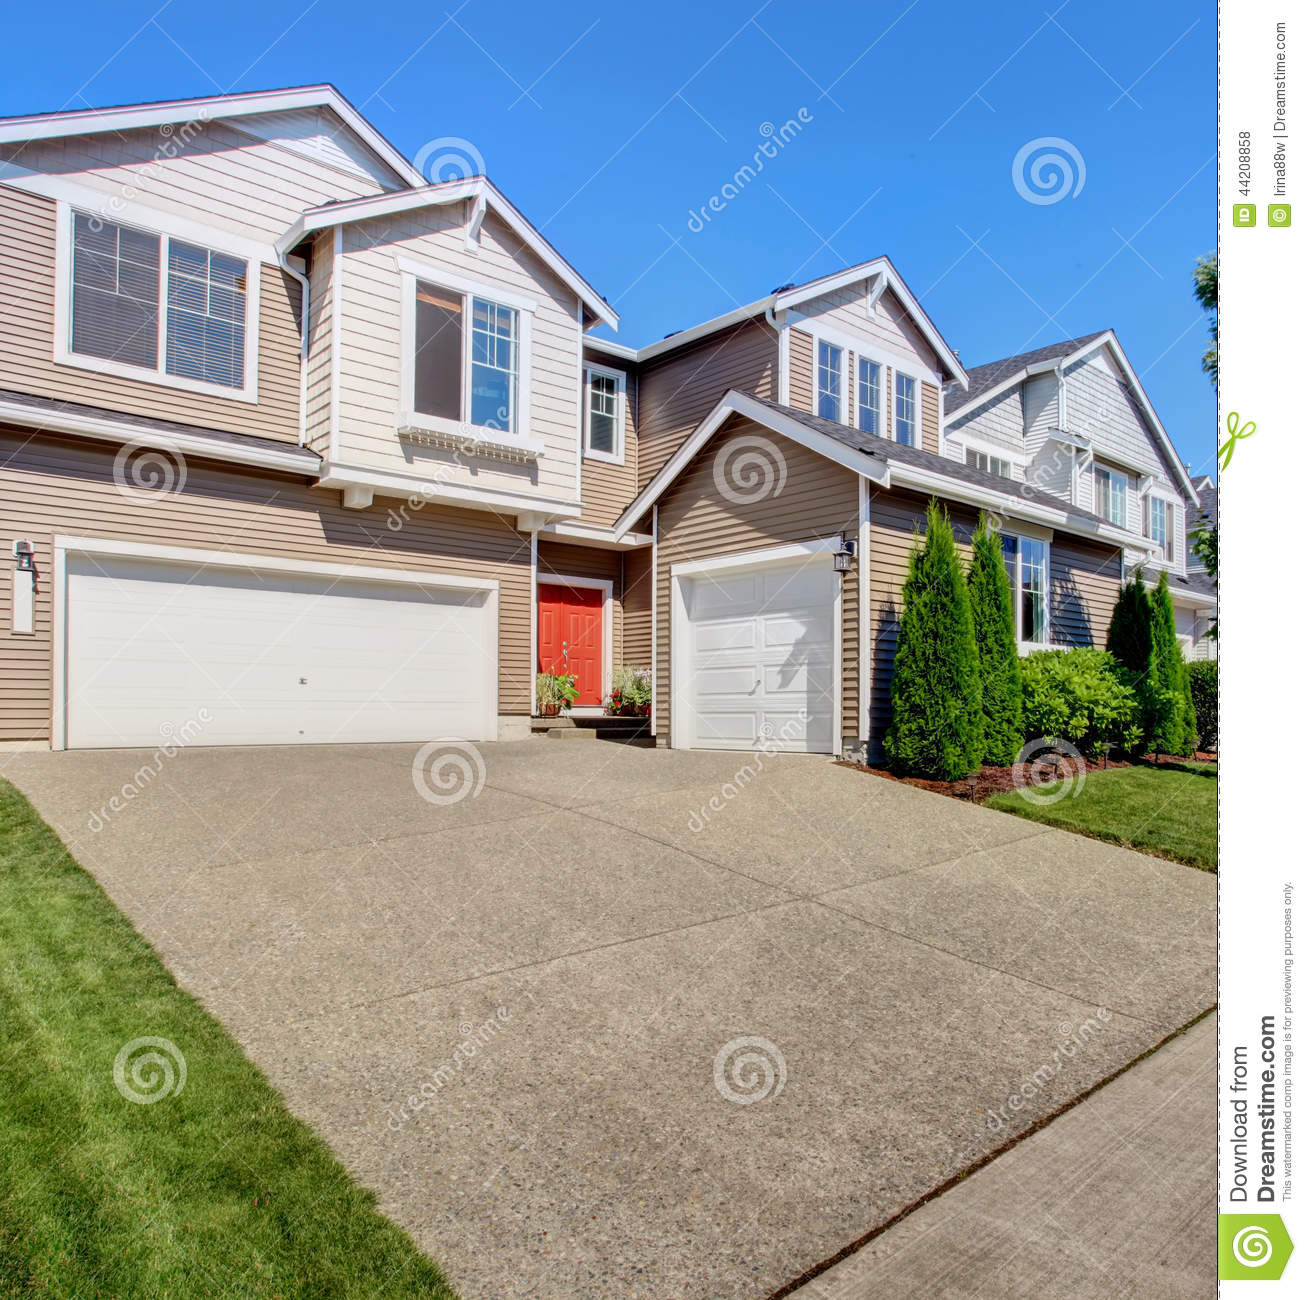 Big house exterior with garage and driveway stock photo for House with big garage